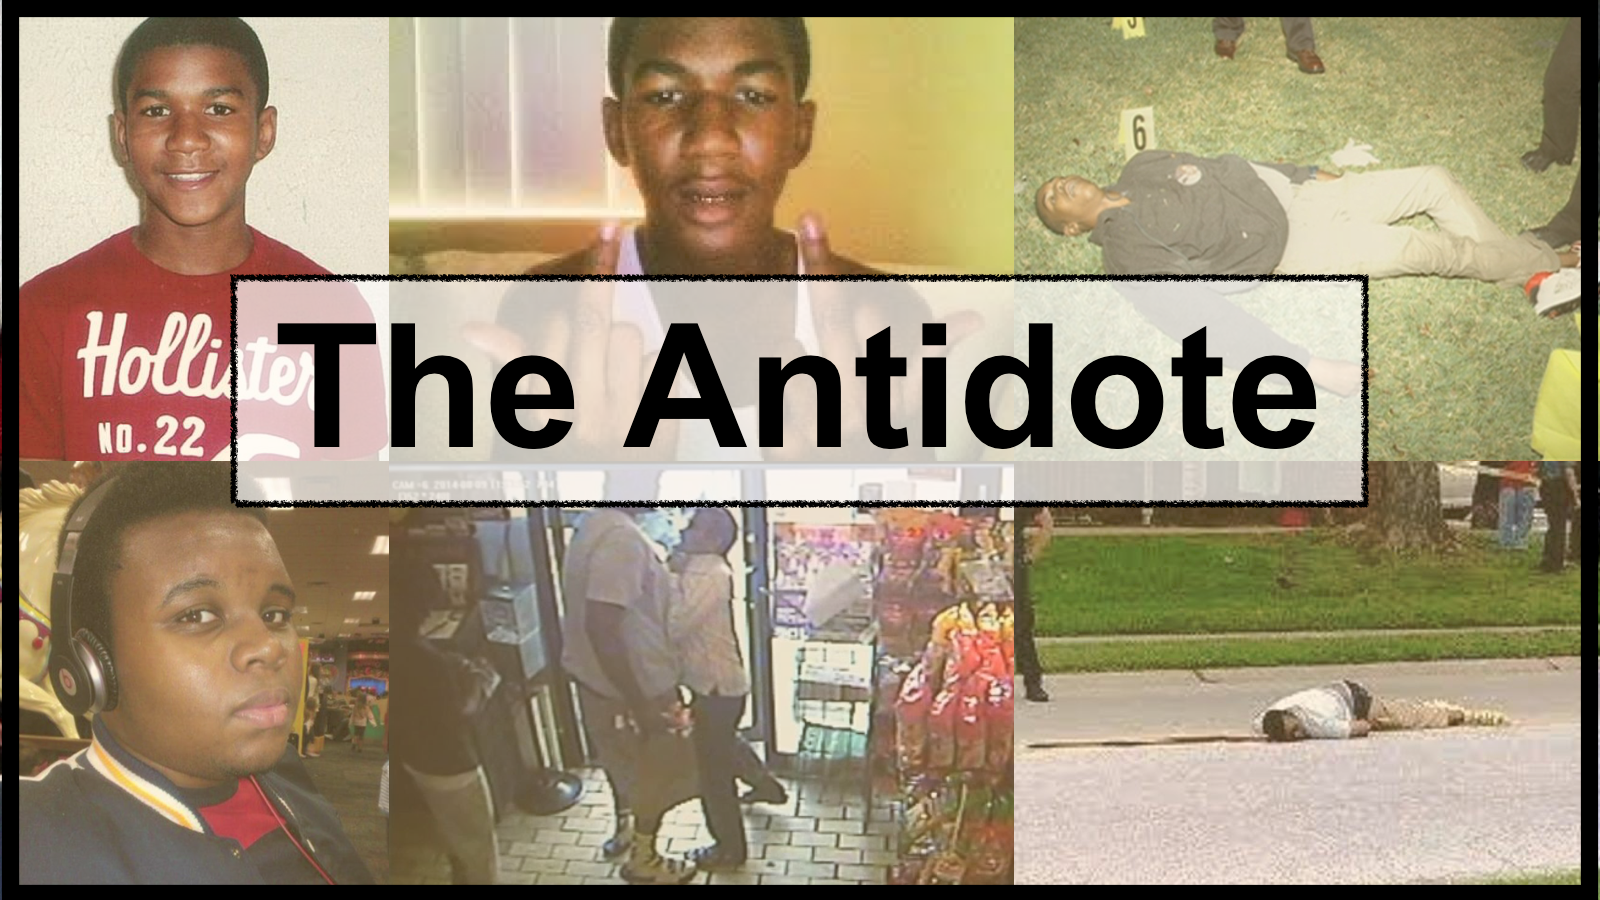 The Antidote collage with Trayvon Martin and Michael Brown